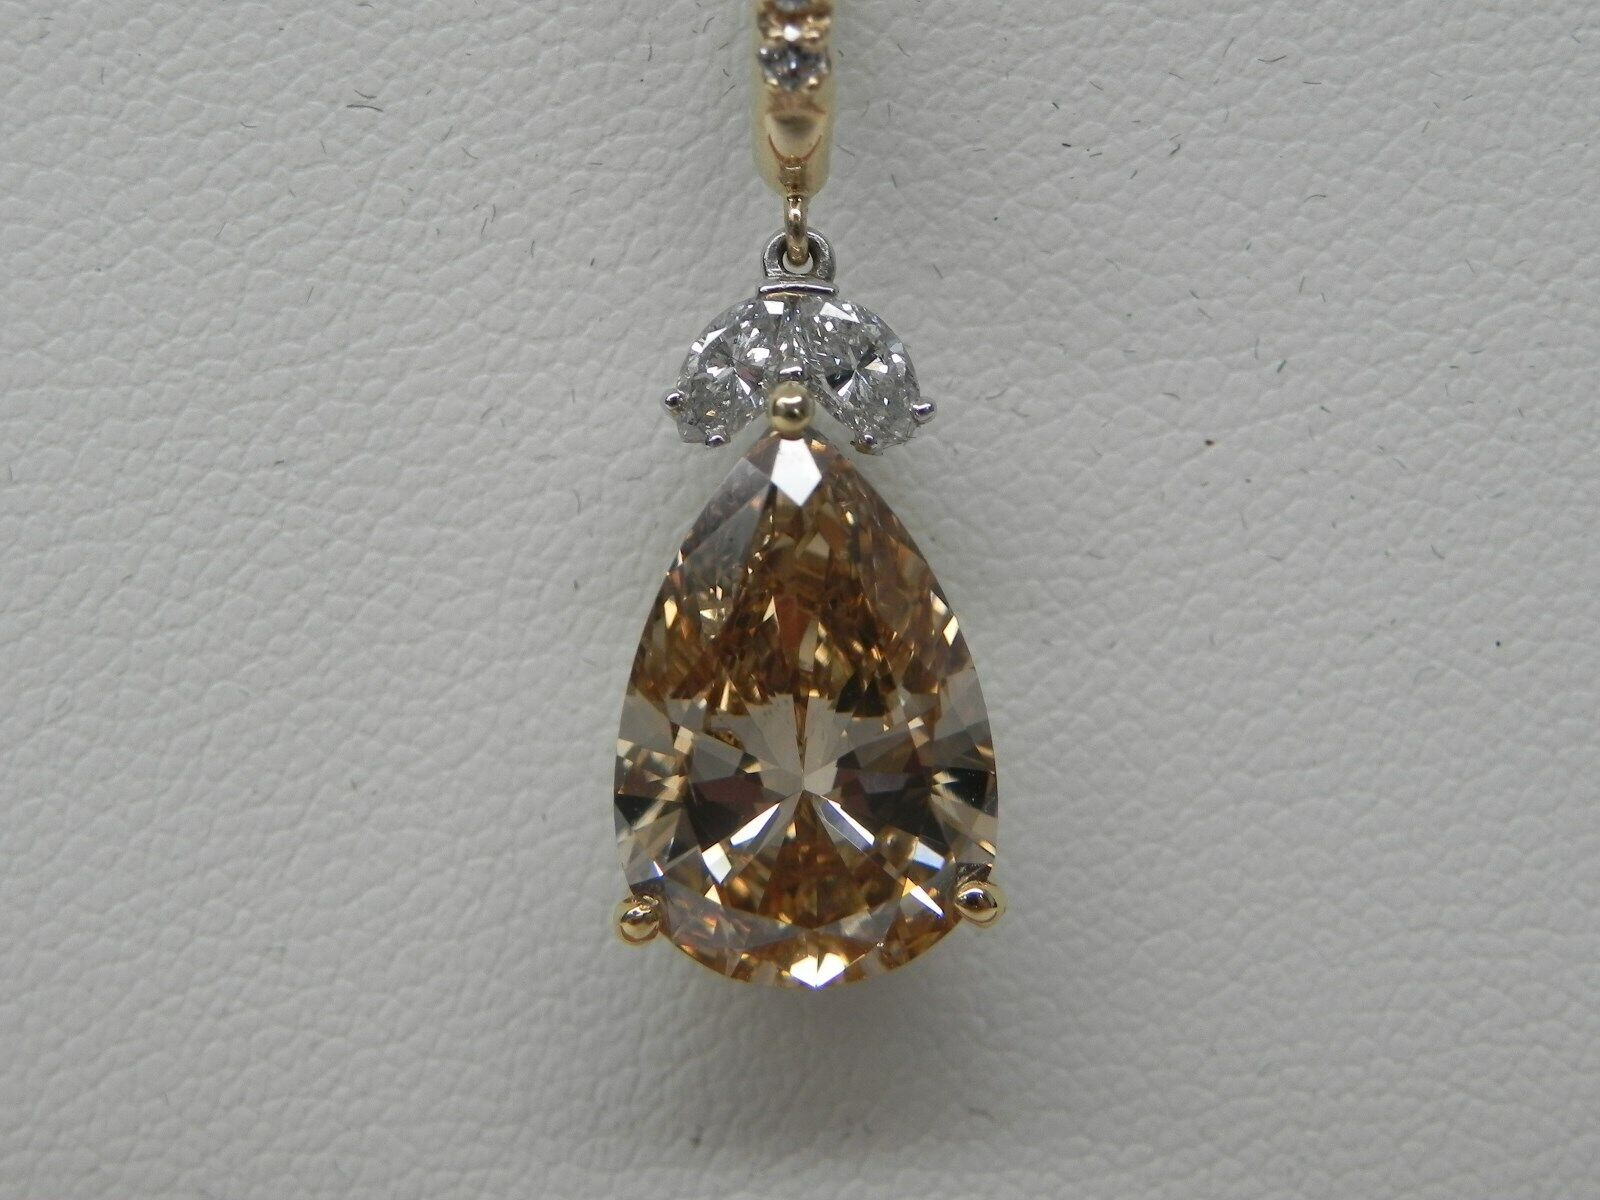 Diamond 5.01ct Pear Shape Natural Fancy Brown SI1 GIA Certified 14kt Pendant